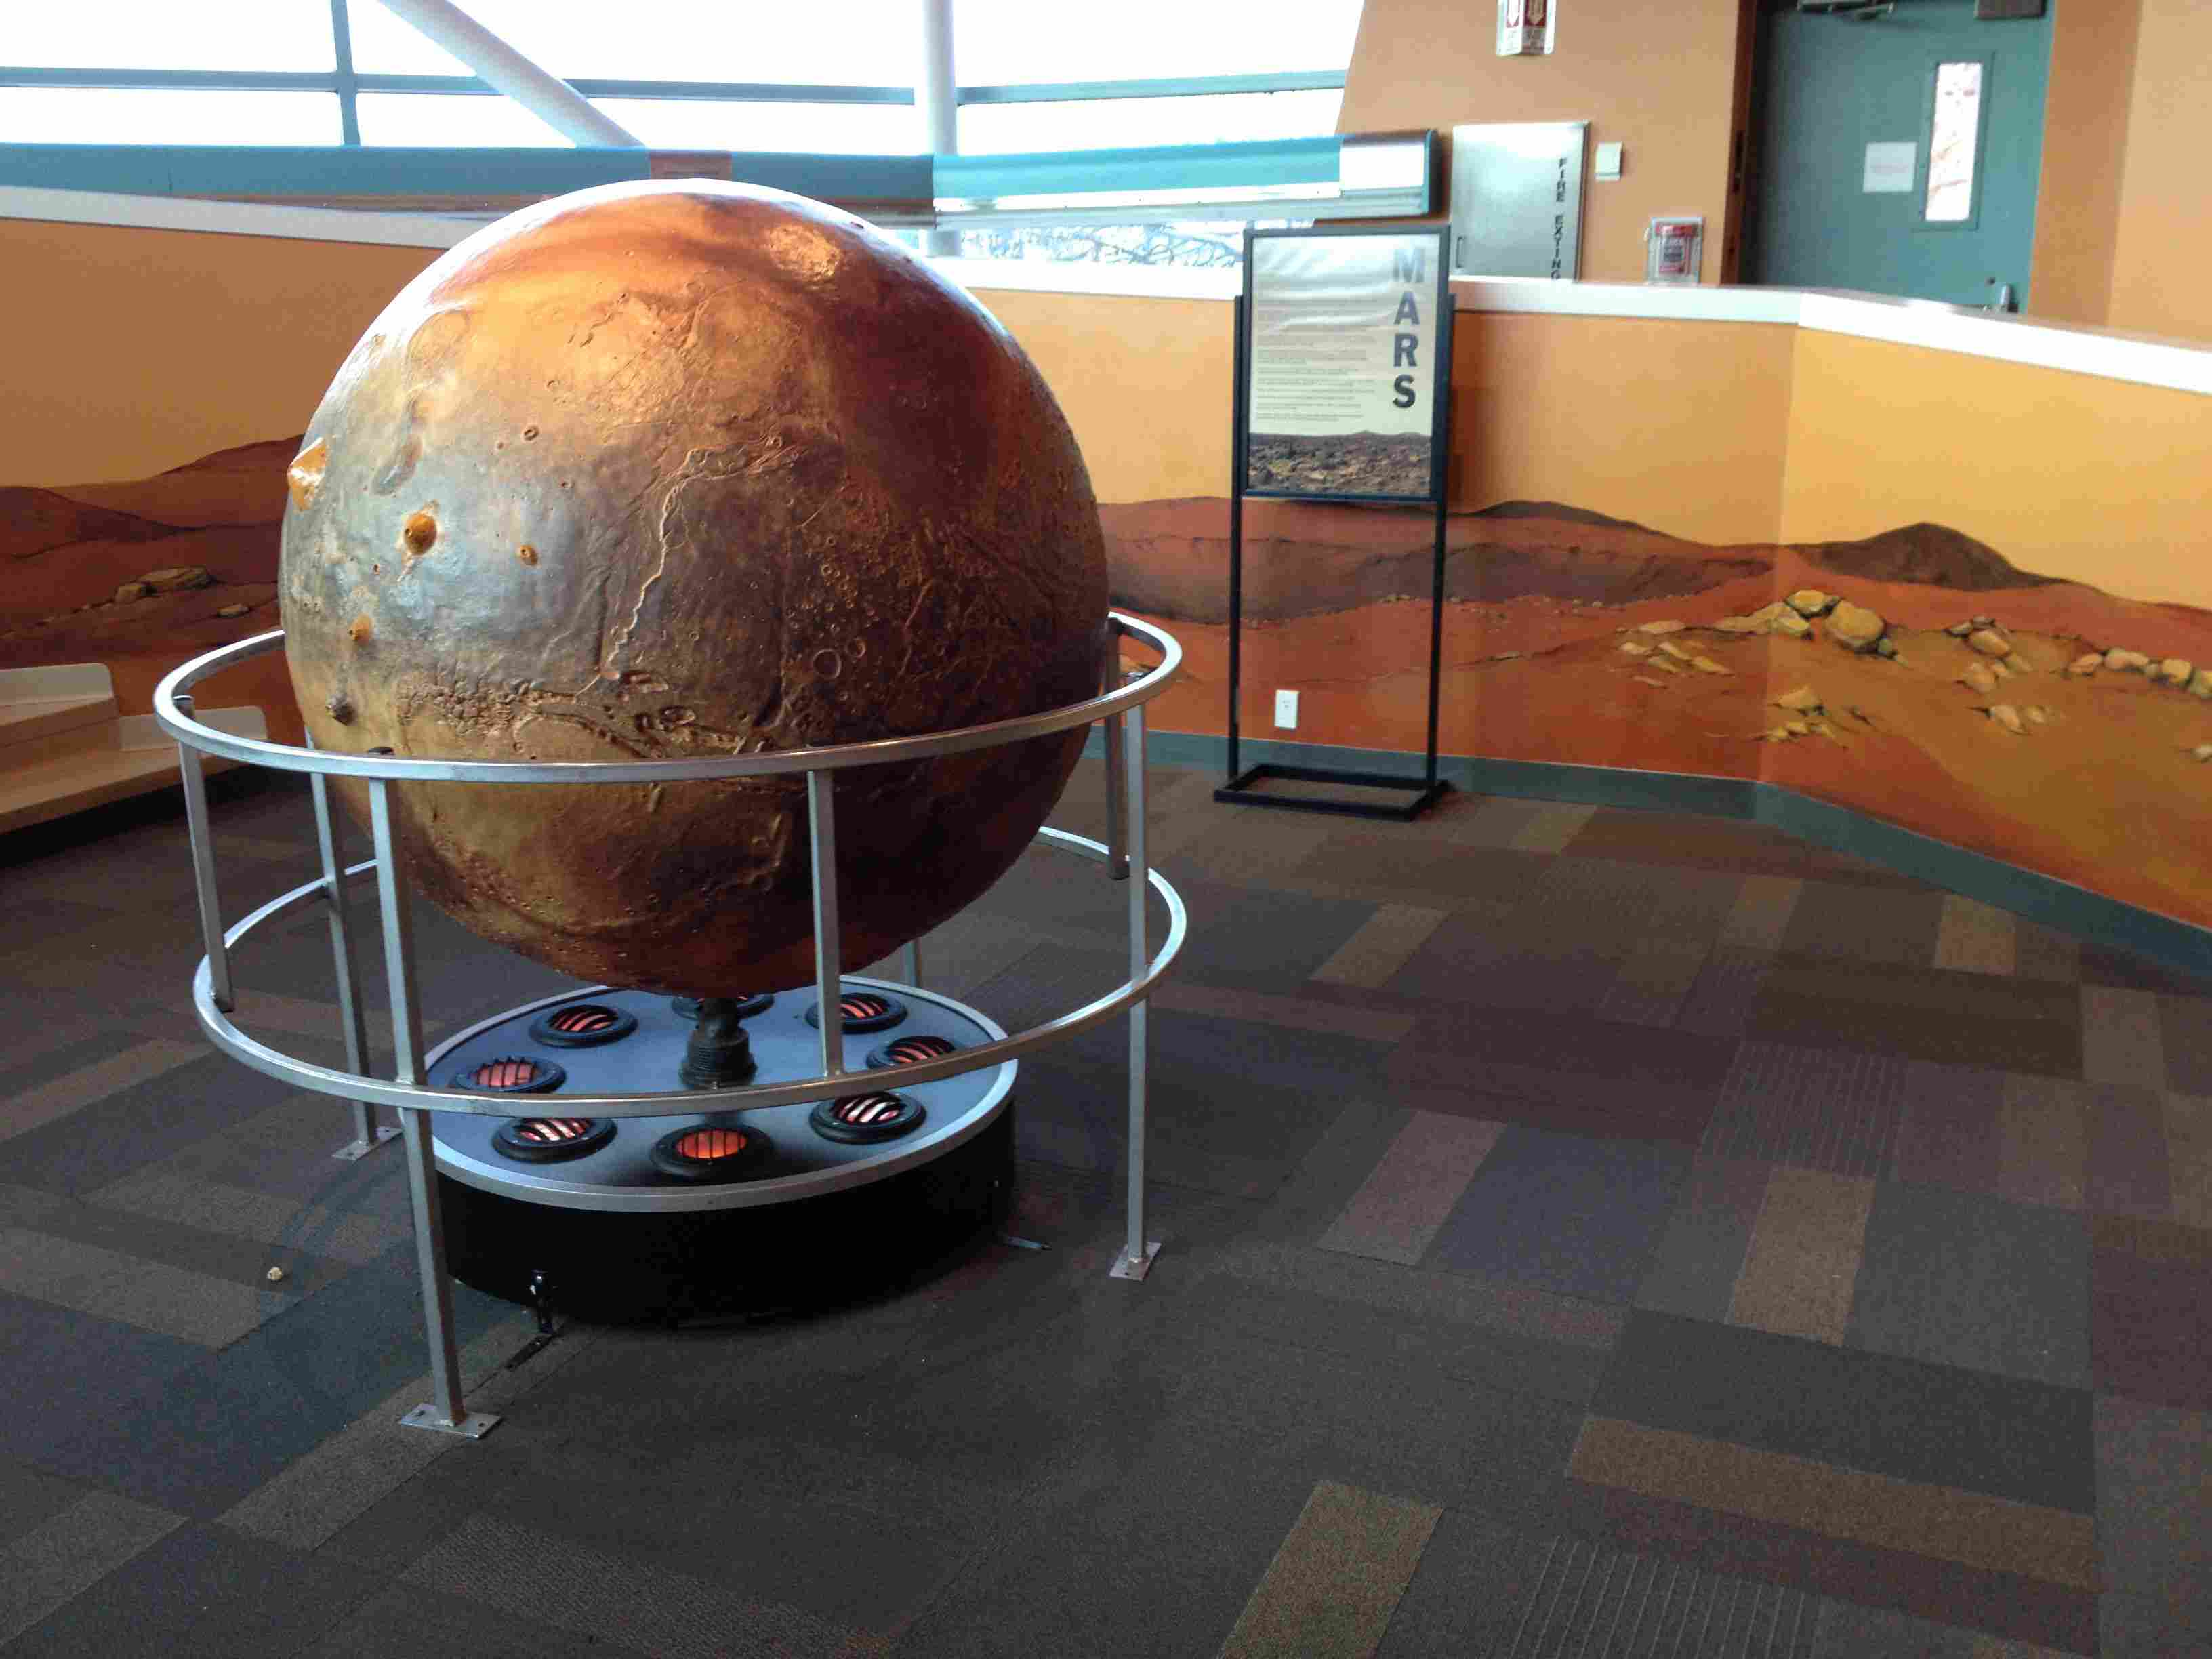 Mars Model at the St. Louis Science Center